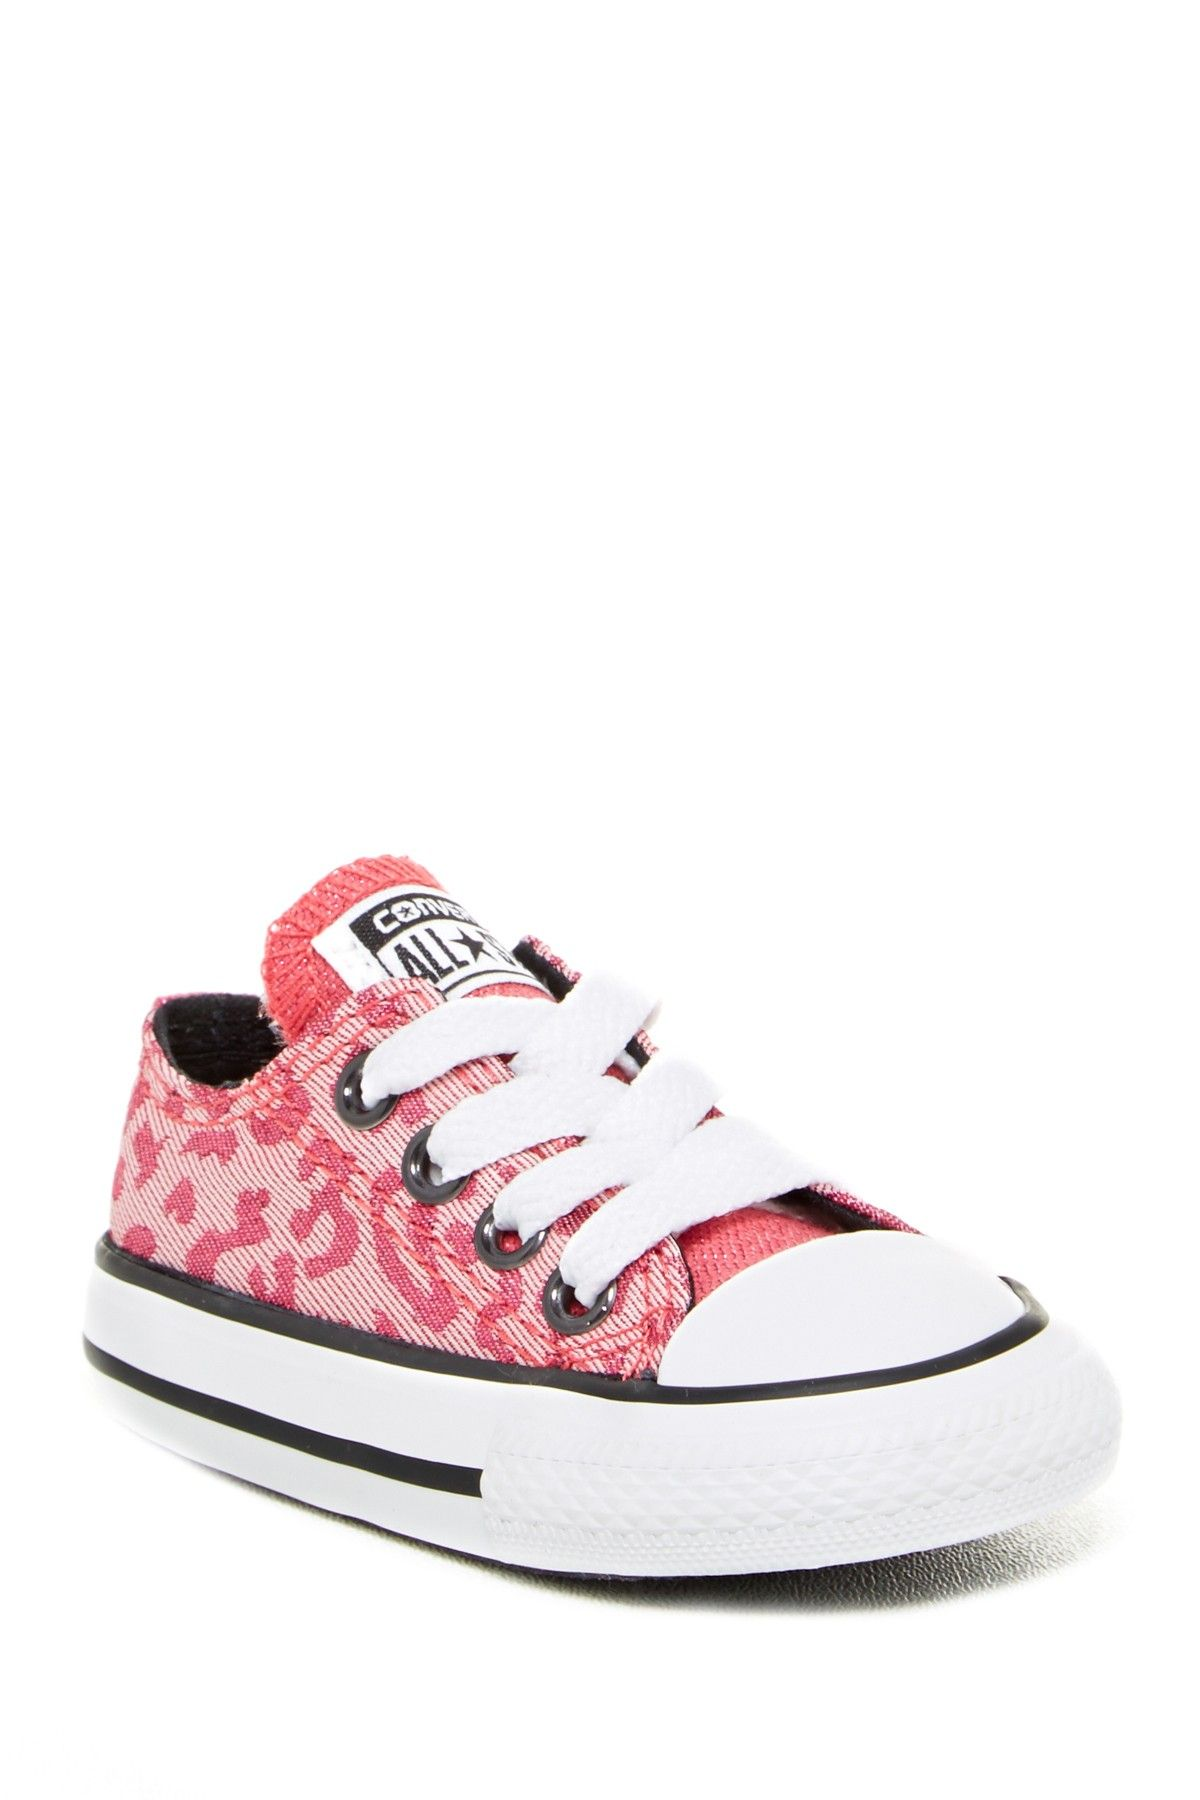 2e7b18fdaf0c3b Chuck Taylor All Star Metallic Leopard Oxford Sneaker (Baby   Toddler) by  Converse on  nordstrom rack